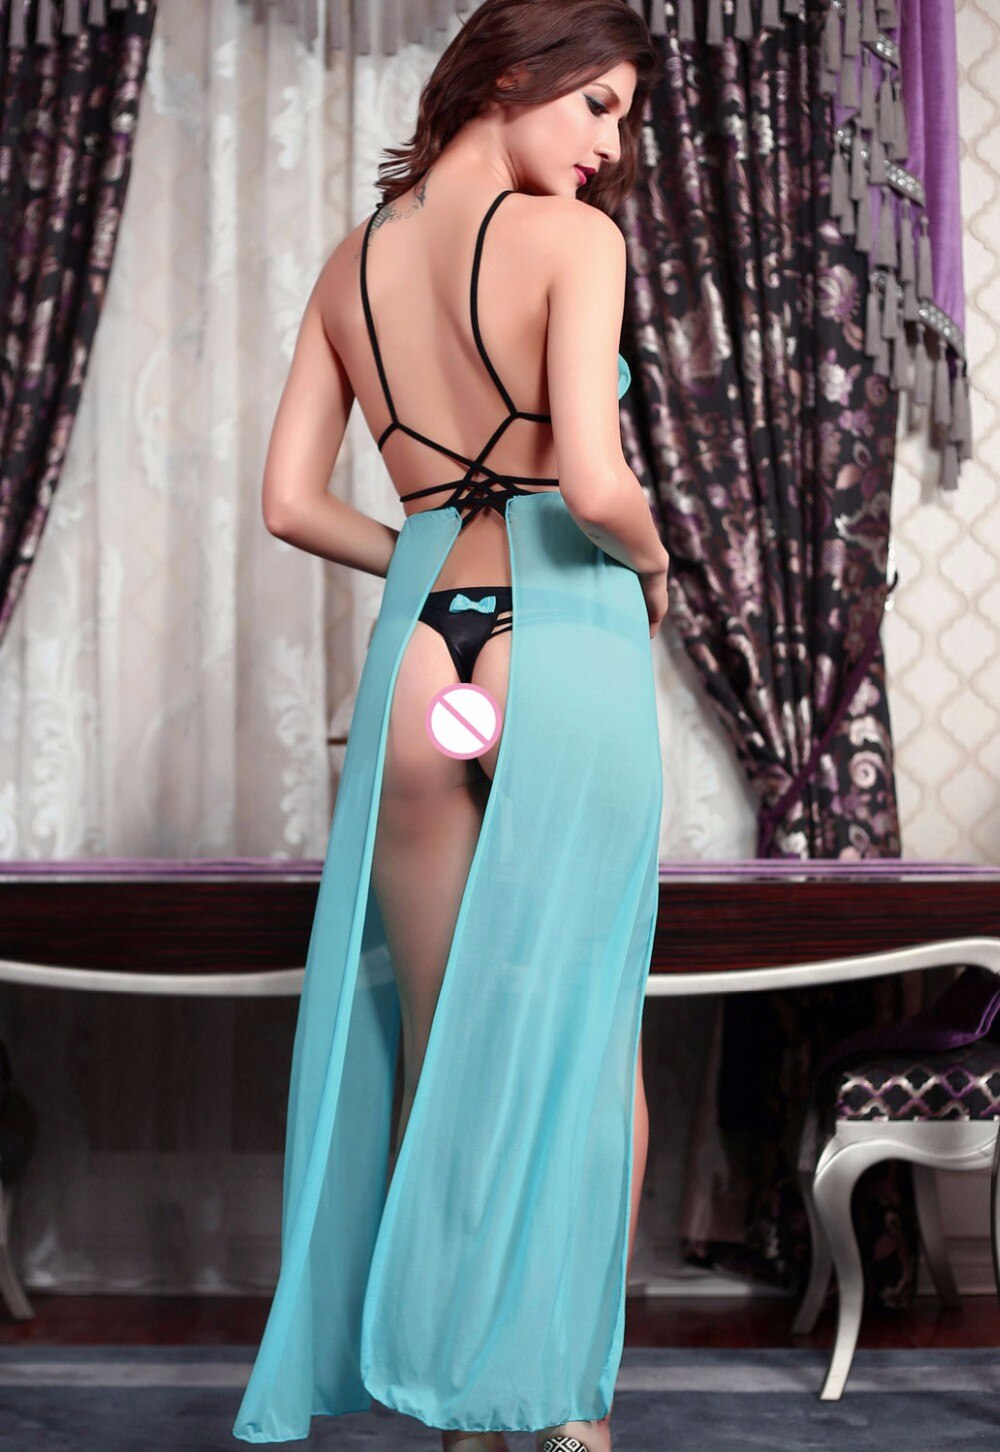 Fashion Strappy Dessous - Sexy Long Nightgown Transparent Dress